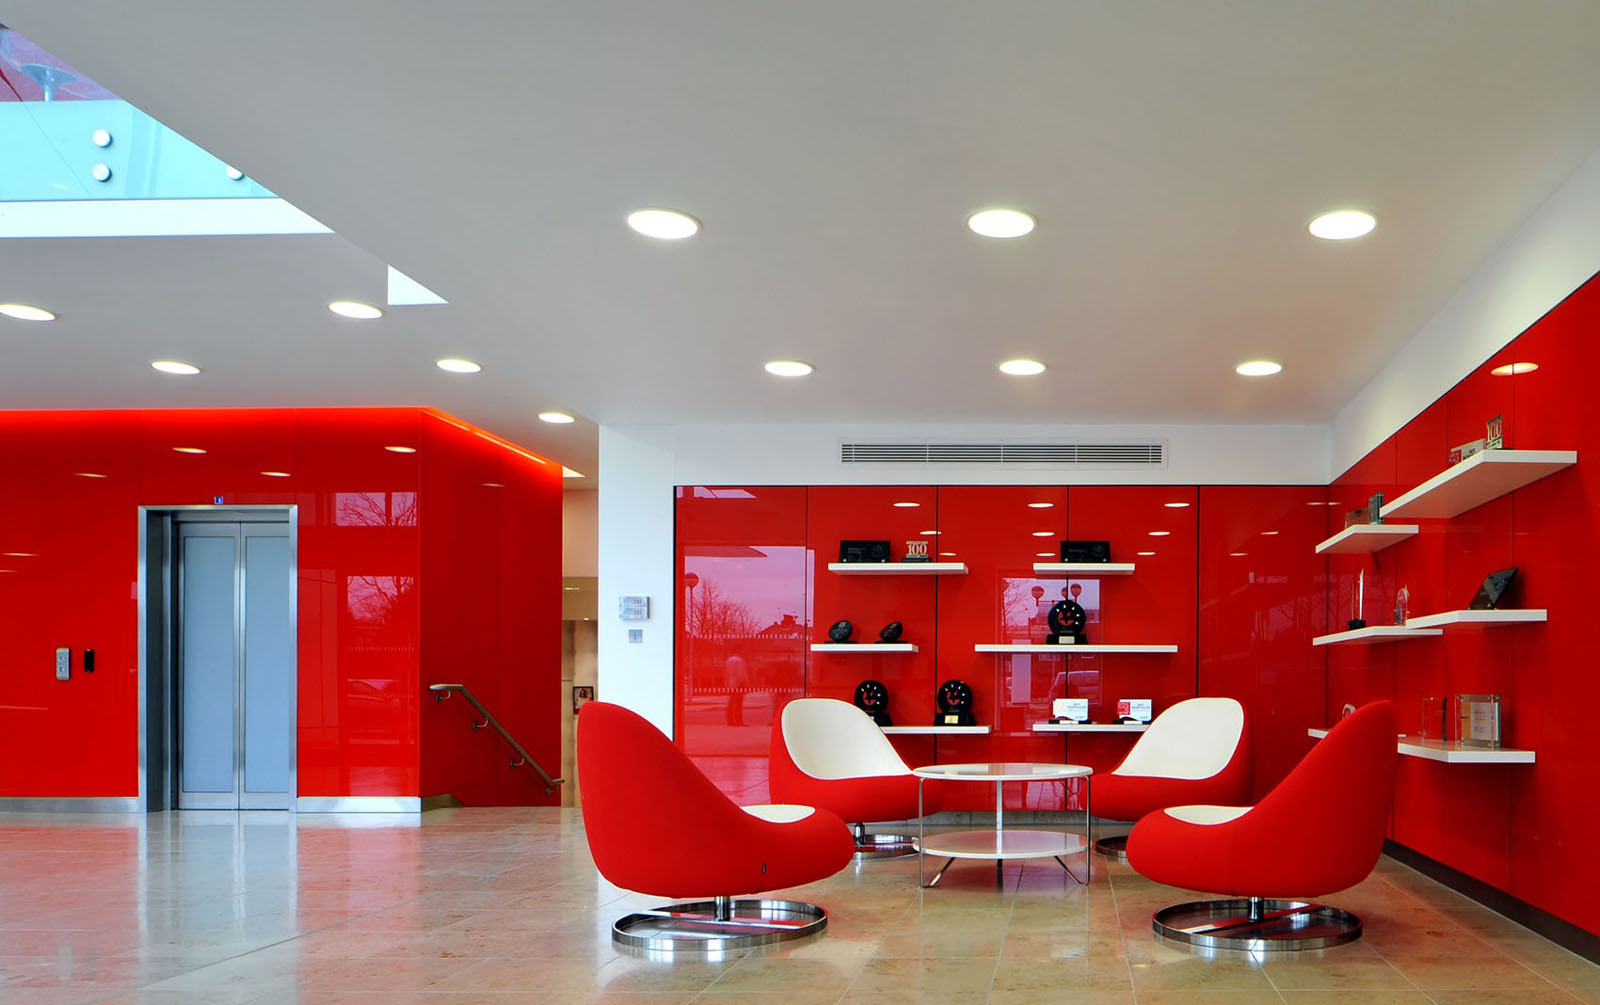 Inspiring british office interior design at rackspace - Red white interior design ...